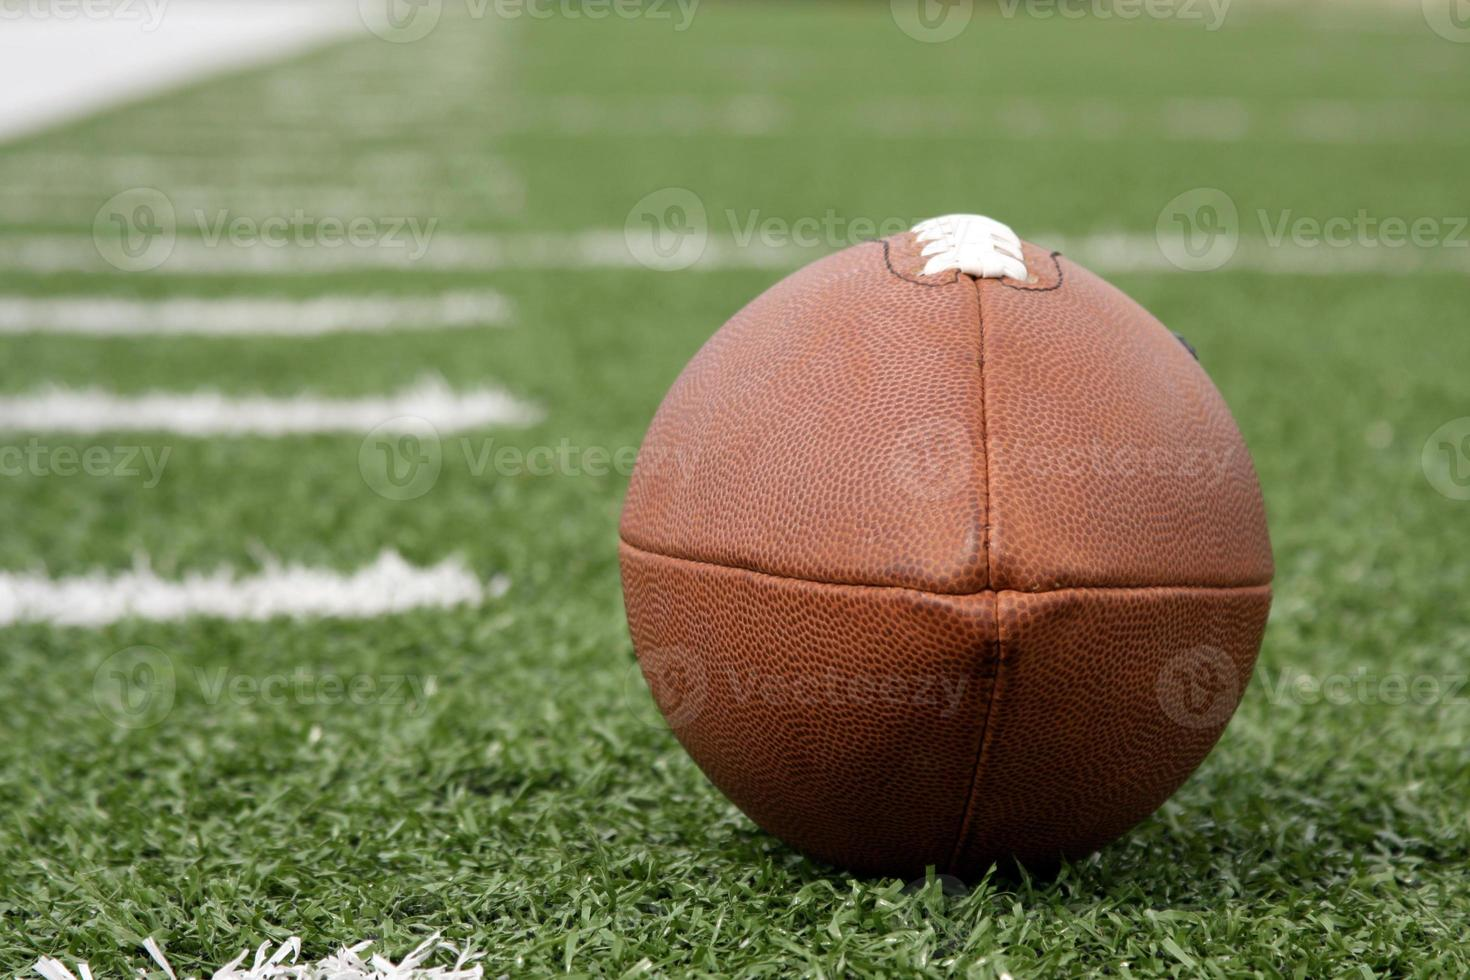 American Football near the yard lines on a field photo